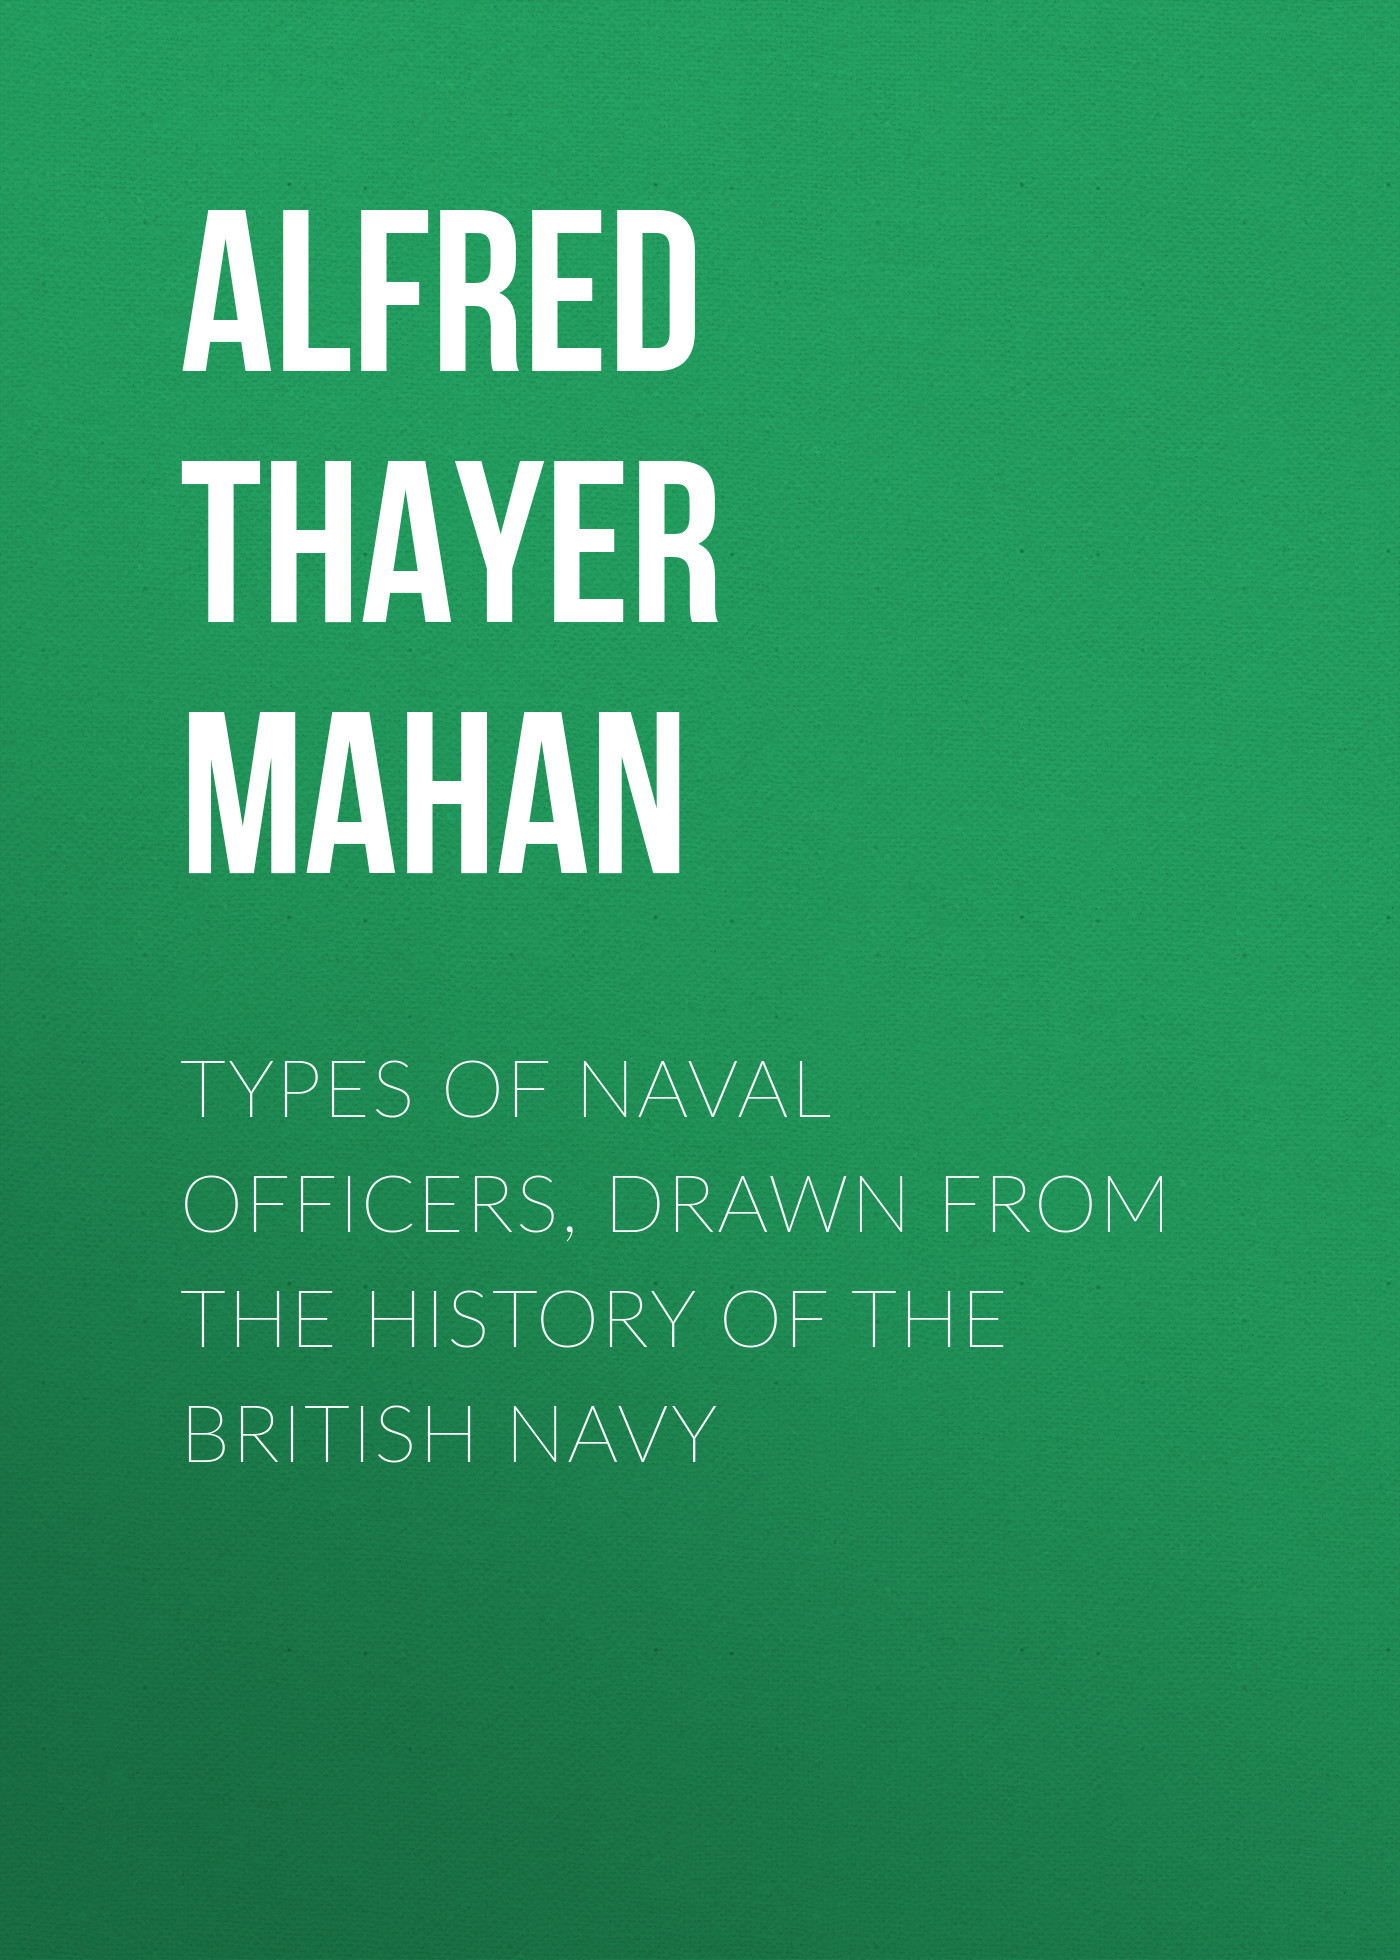 Alfred Thayer Mahan Types of Naval Officers, Drawn from the History of the British Navy юбка love republic цвет мятный 8151164202 19 размер 42